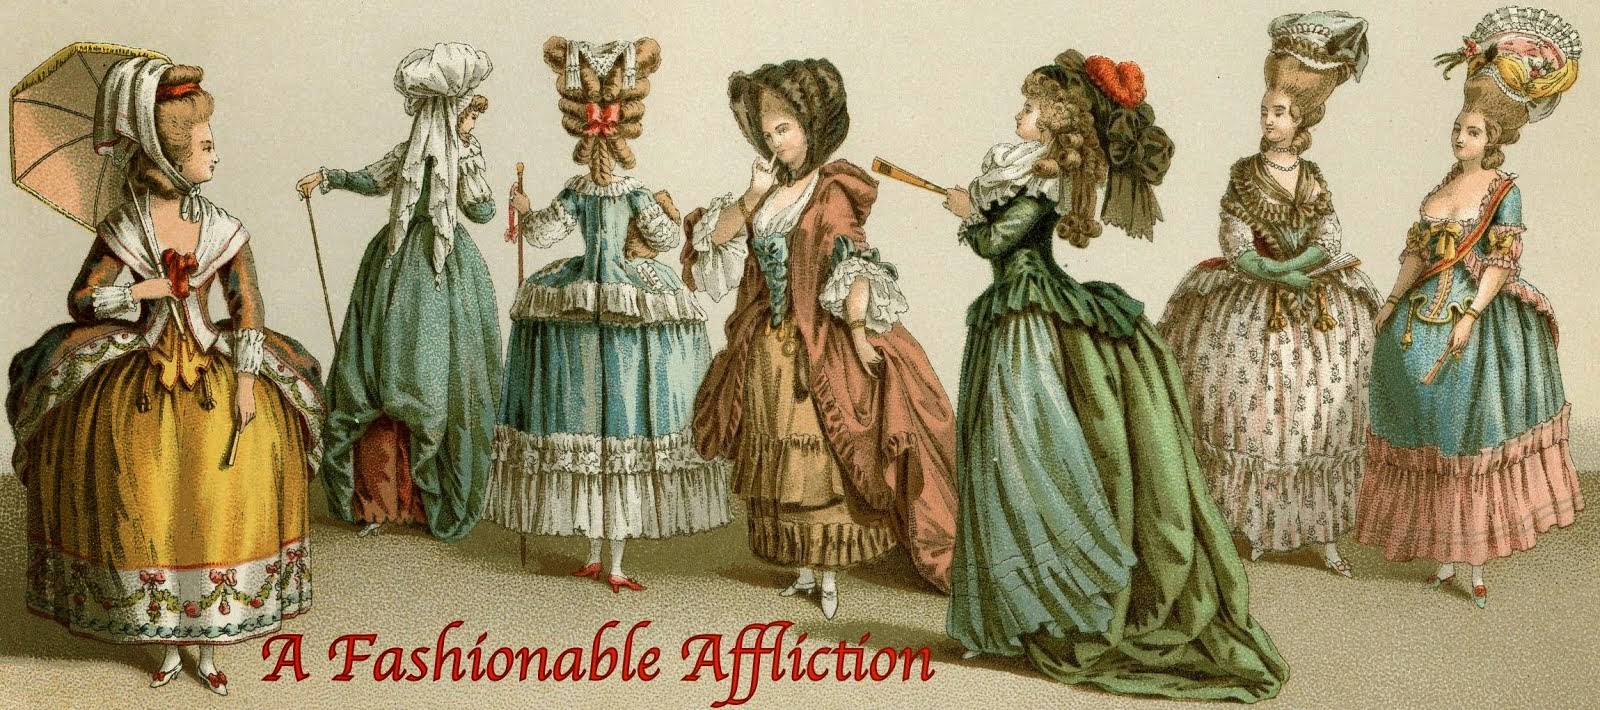 A Fashionable Affliction